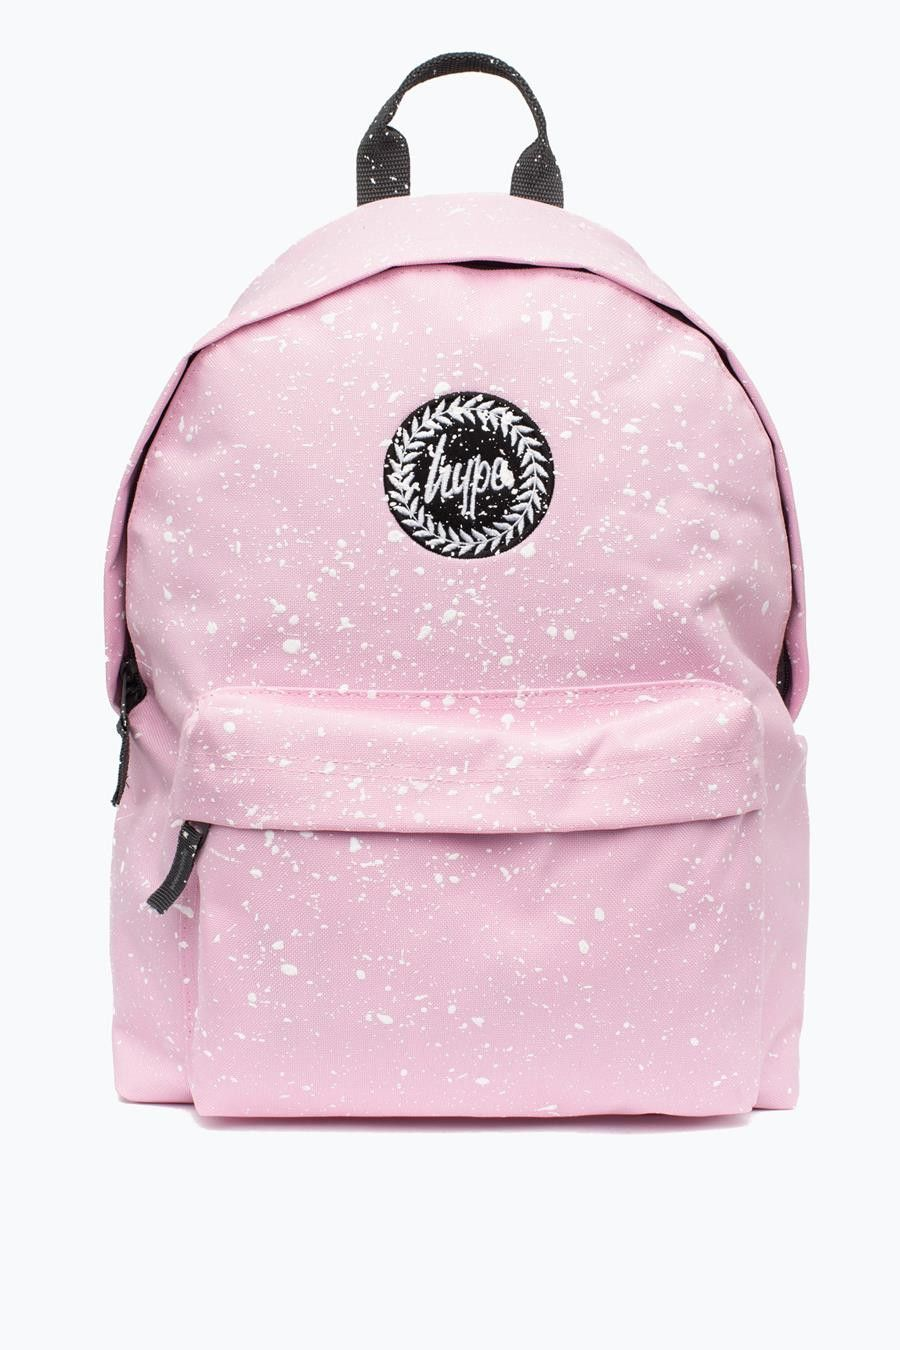 f86d5da7ac Hype Baby Pink With White Backpack  pinkfashionbackpacks